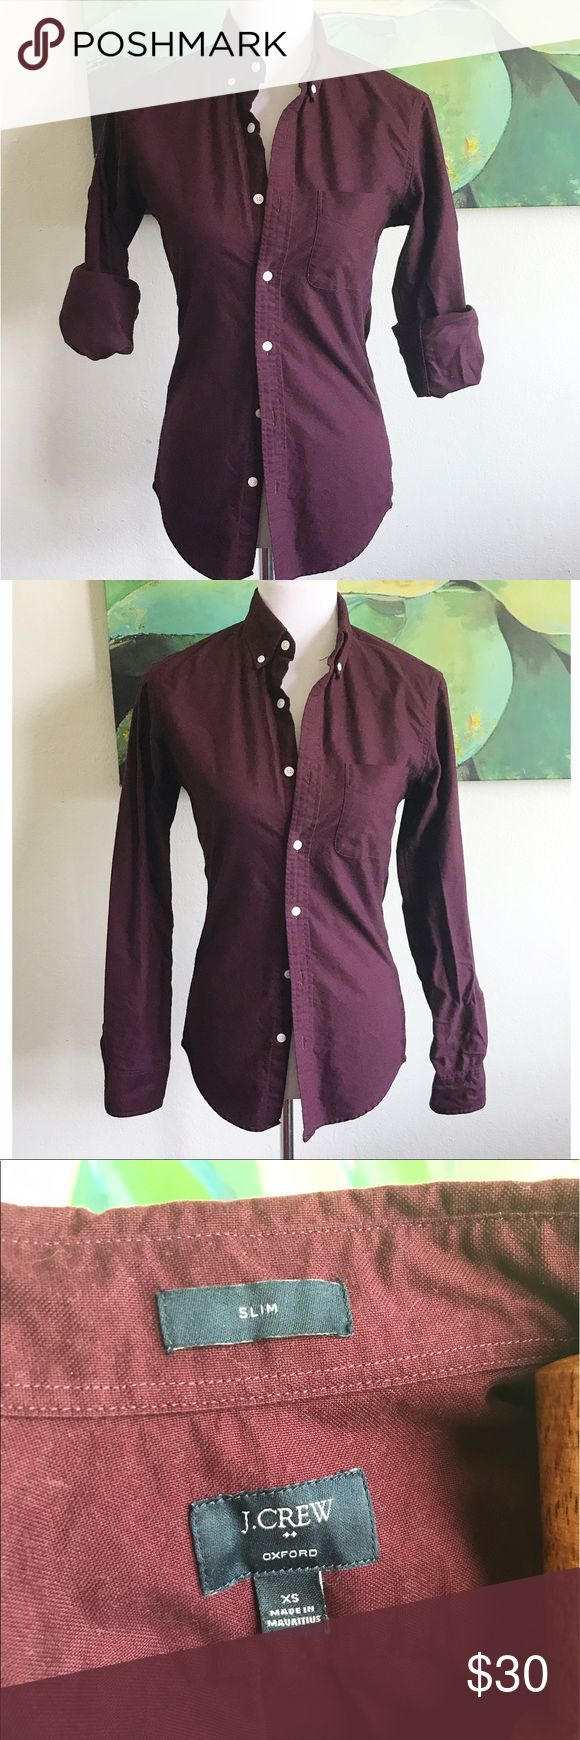 """J. crew oxford blood button down casual shirt Sm Women's J. Crew button down oxford slim fit shirt with beige button detail. Item is preowned and in great condition. Material is 100% cotton. Made in Mauritius 🇲🇺. Thicker material, little stretch (similar to corduroy). Size XS. Item measures 16.5"""" across chest (underarm to underarm) when garment is laid flat. J. Crew Tops Button Down Shirts"""